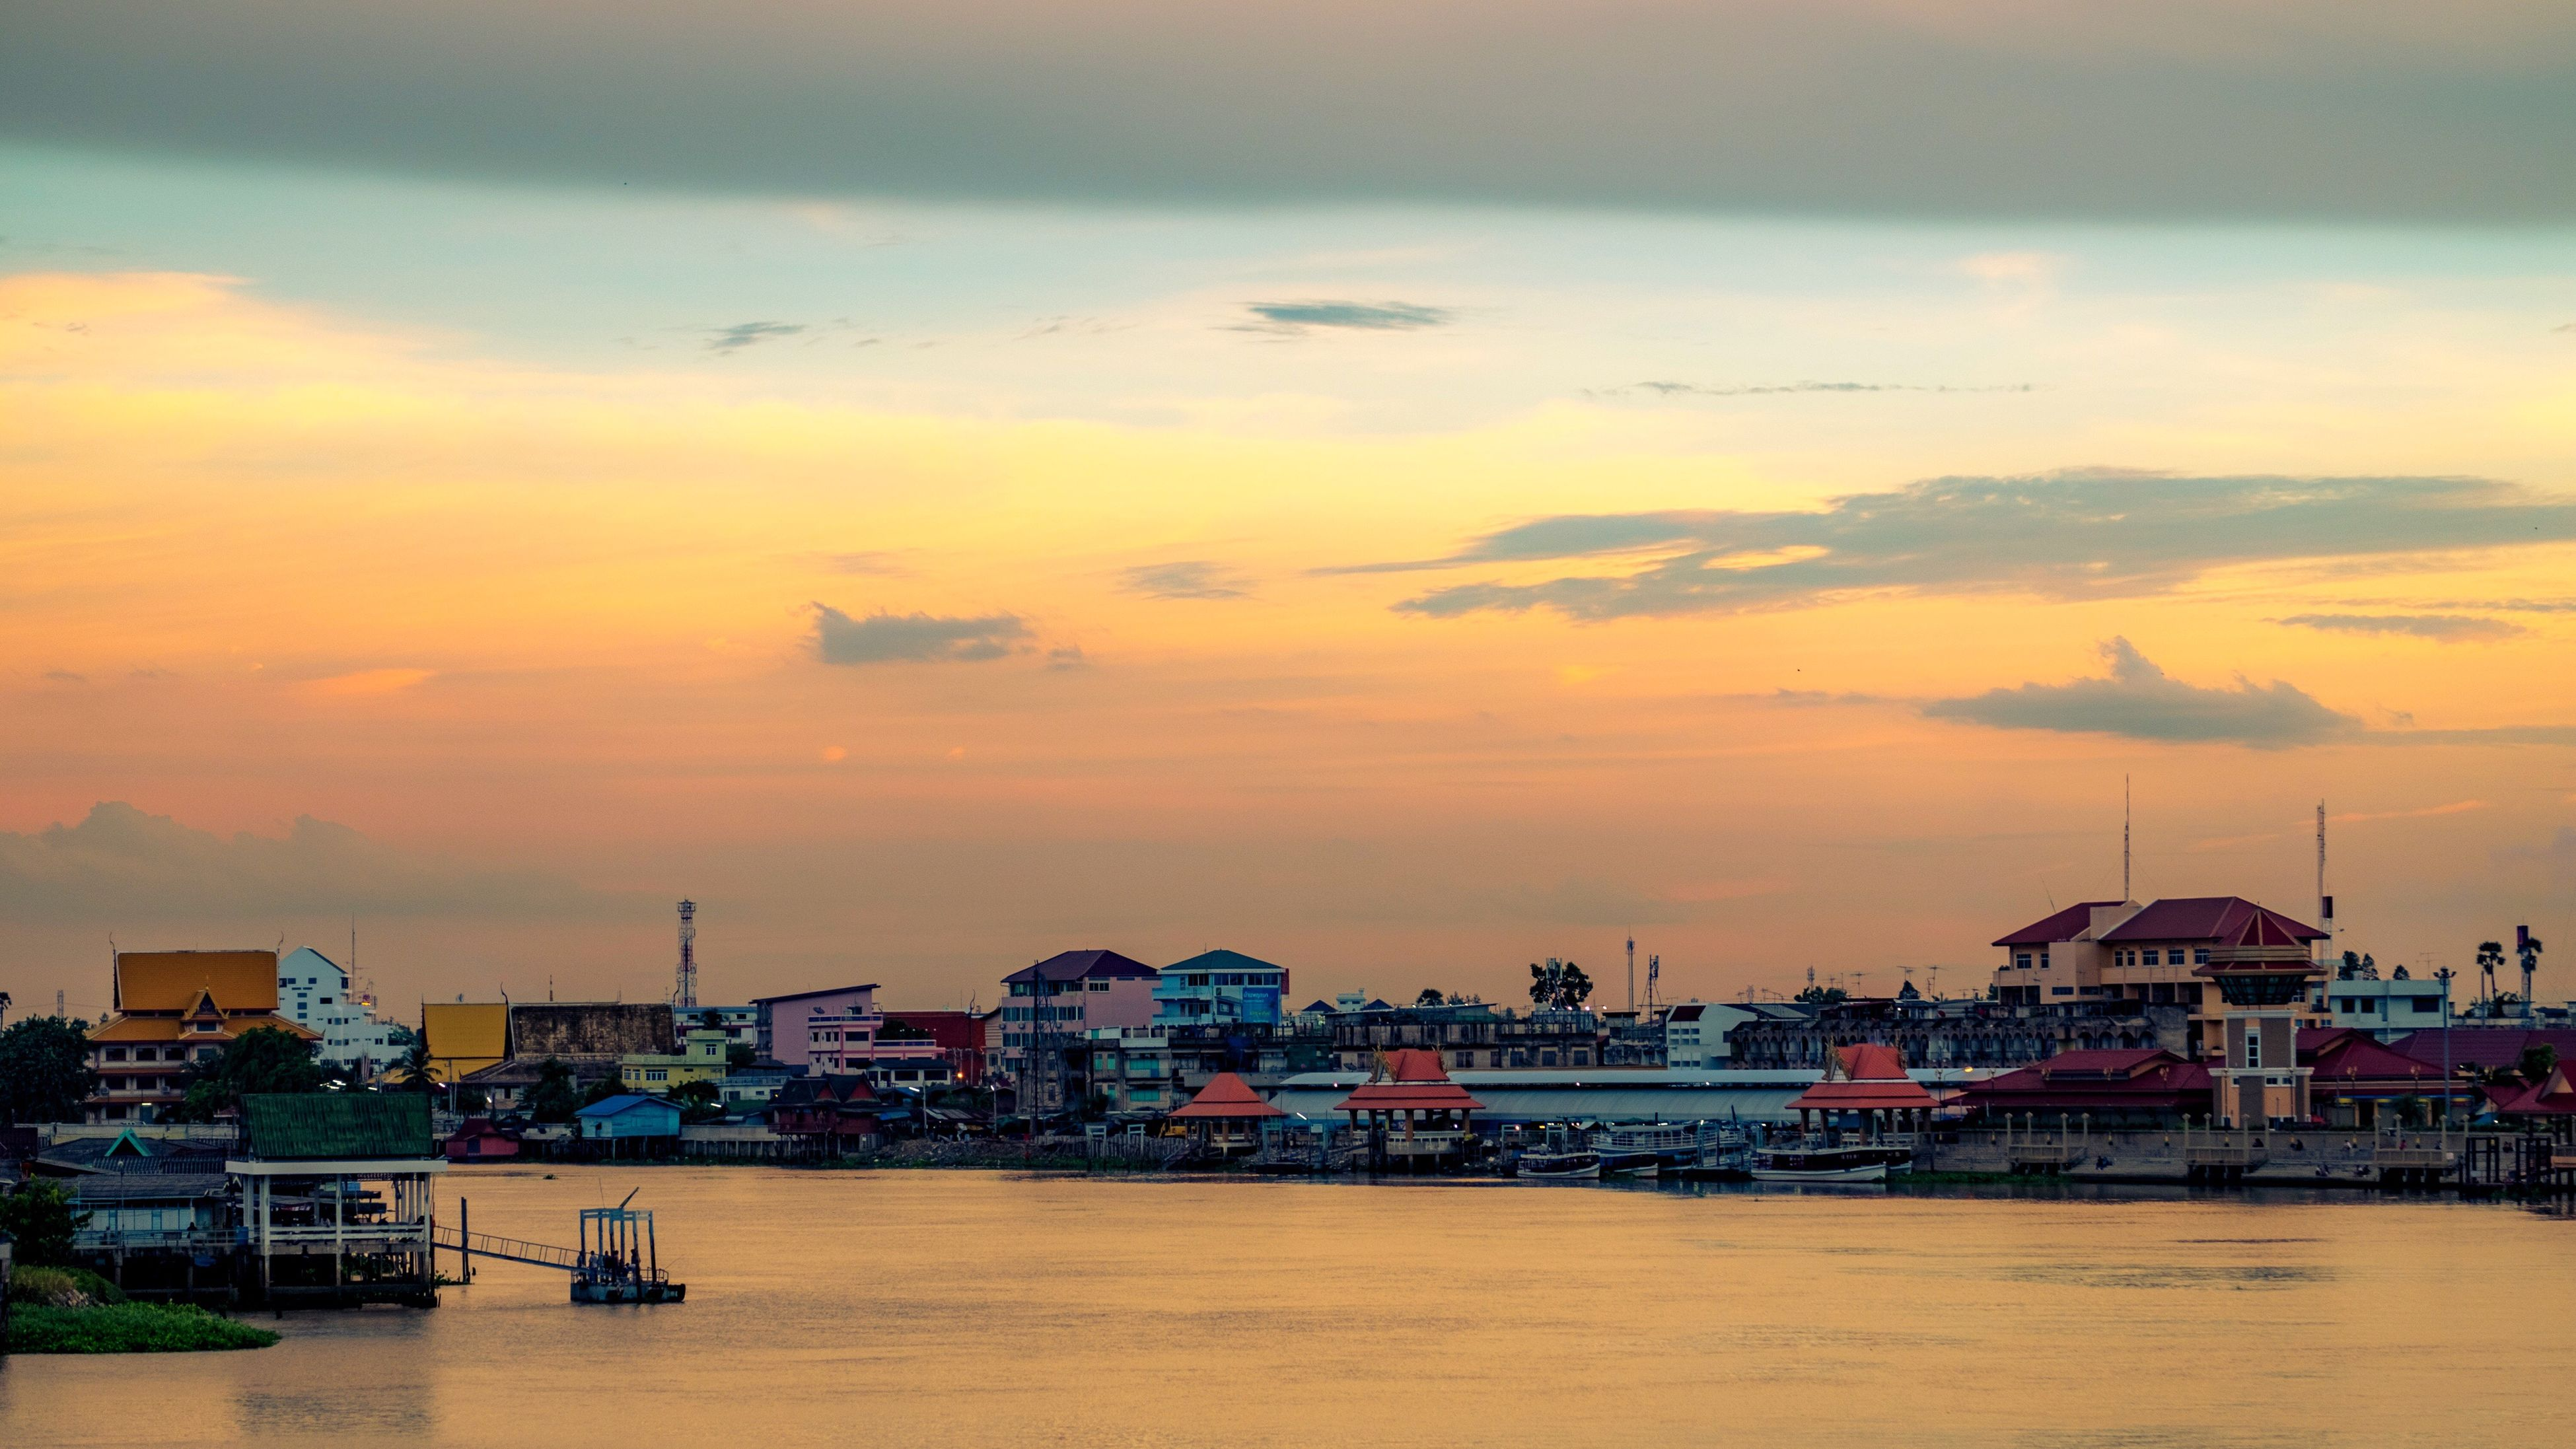 architecture, building exterior, built structure, sunset, sky, cloud - sky, water, cityscape, city, sea, nautical vessel, waterfront, outdoors, nature, harbor, no people, beauty in nature, urban skyline, horizon over water, day